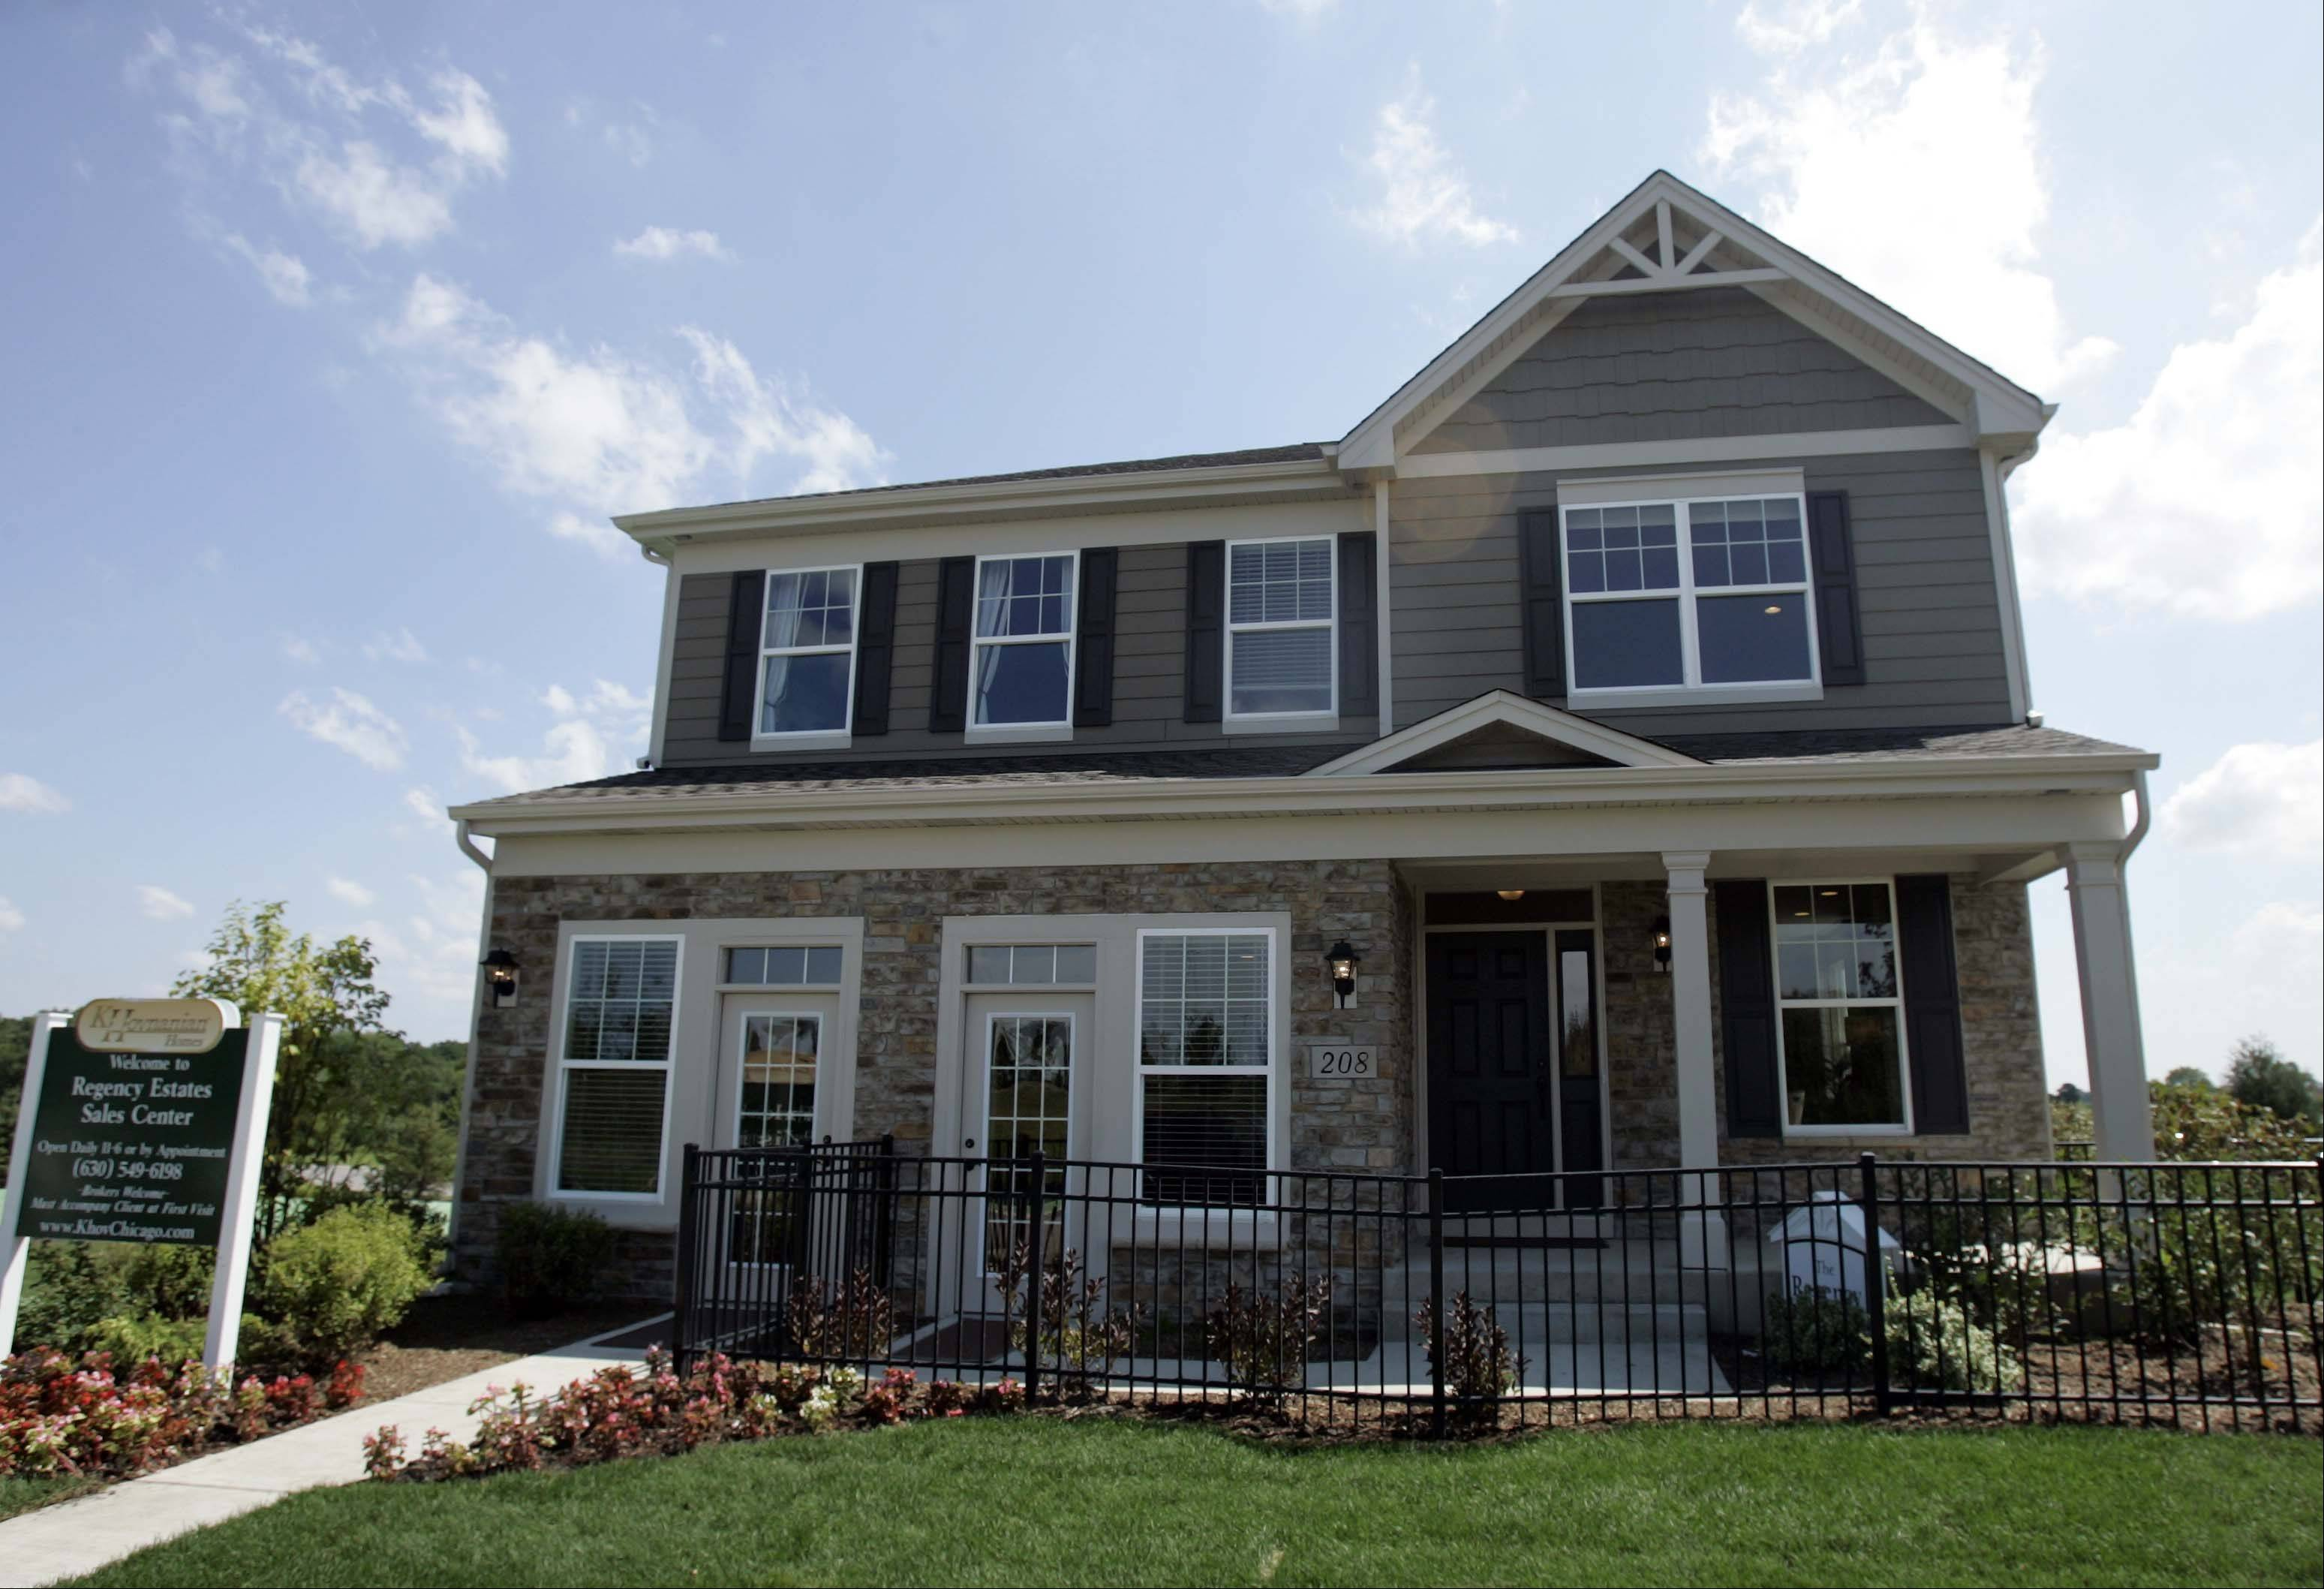 The professionally decorated Regency model is open for viewing at Regency Estates in St. Charles.